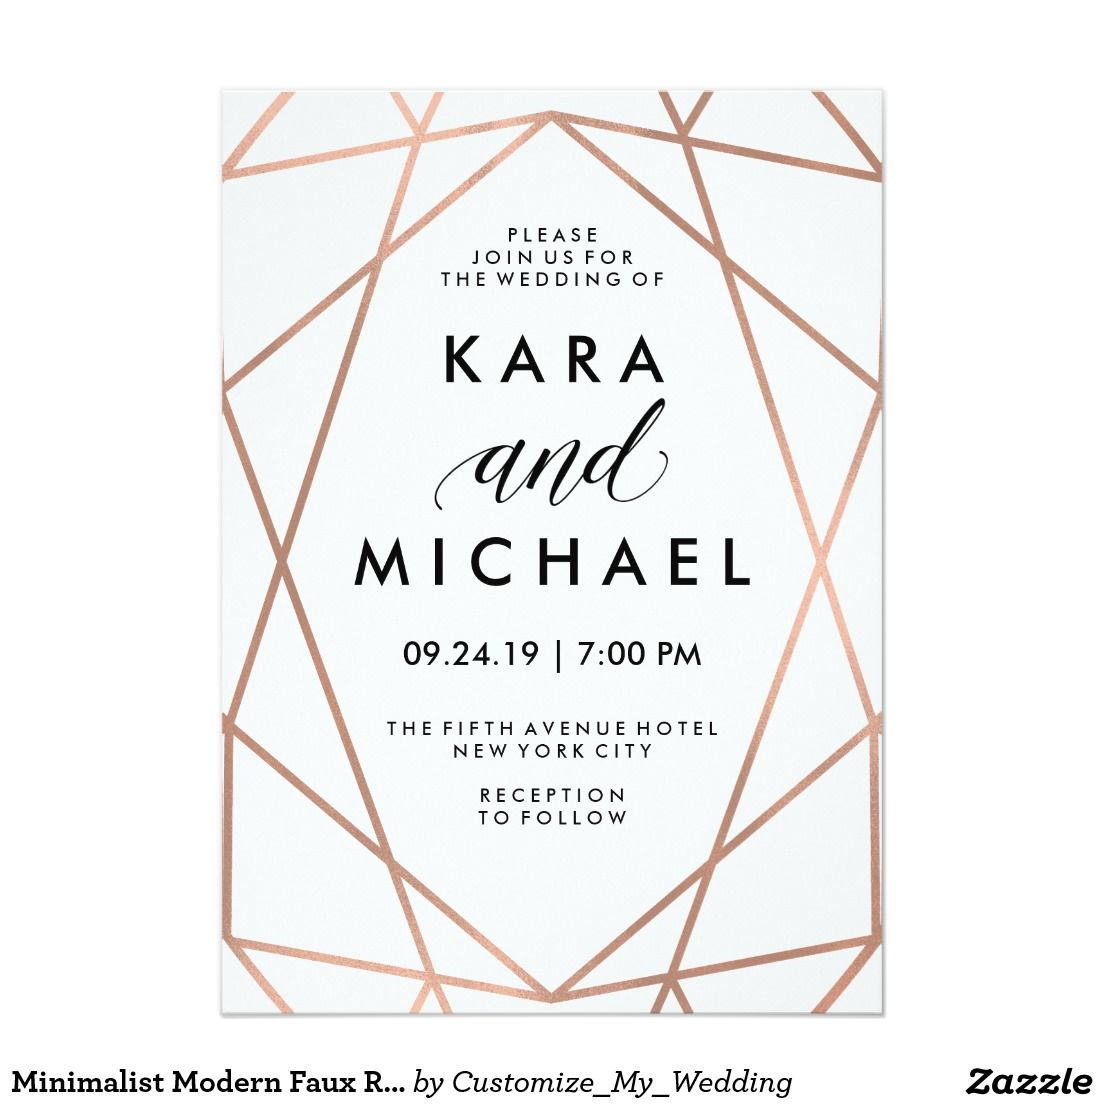 Minimalist Modern Faux Rose Gold On White Card Weddings And Wedding